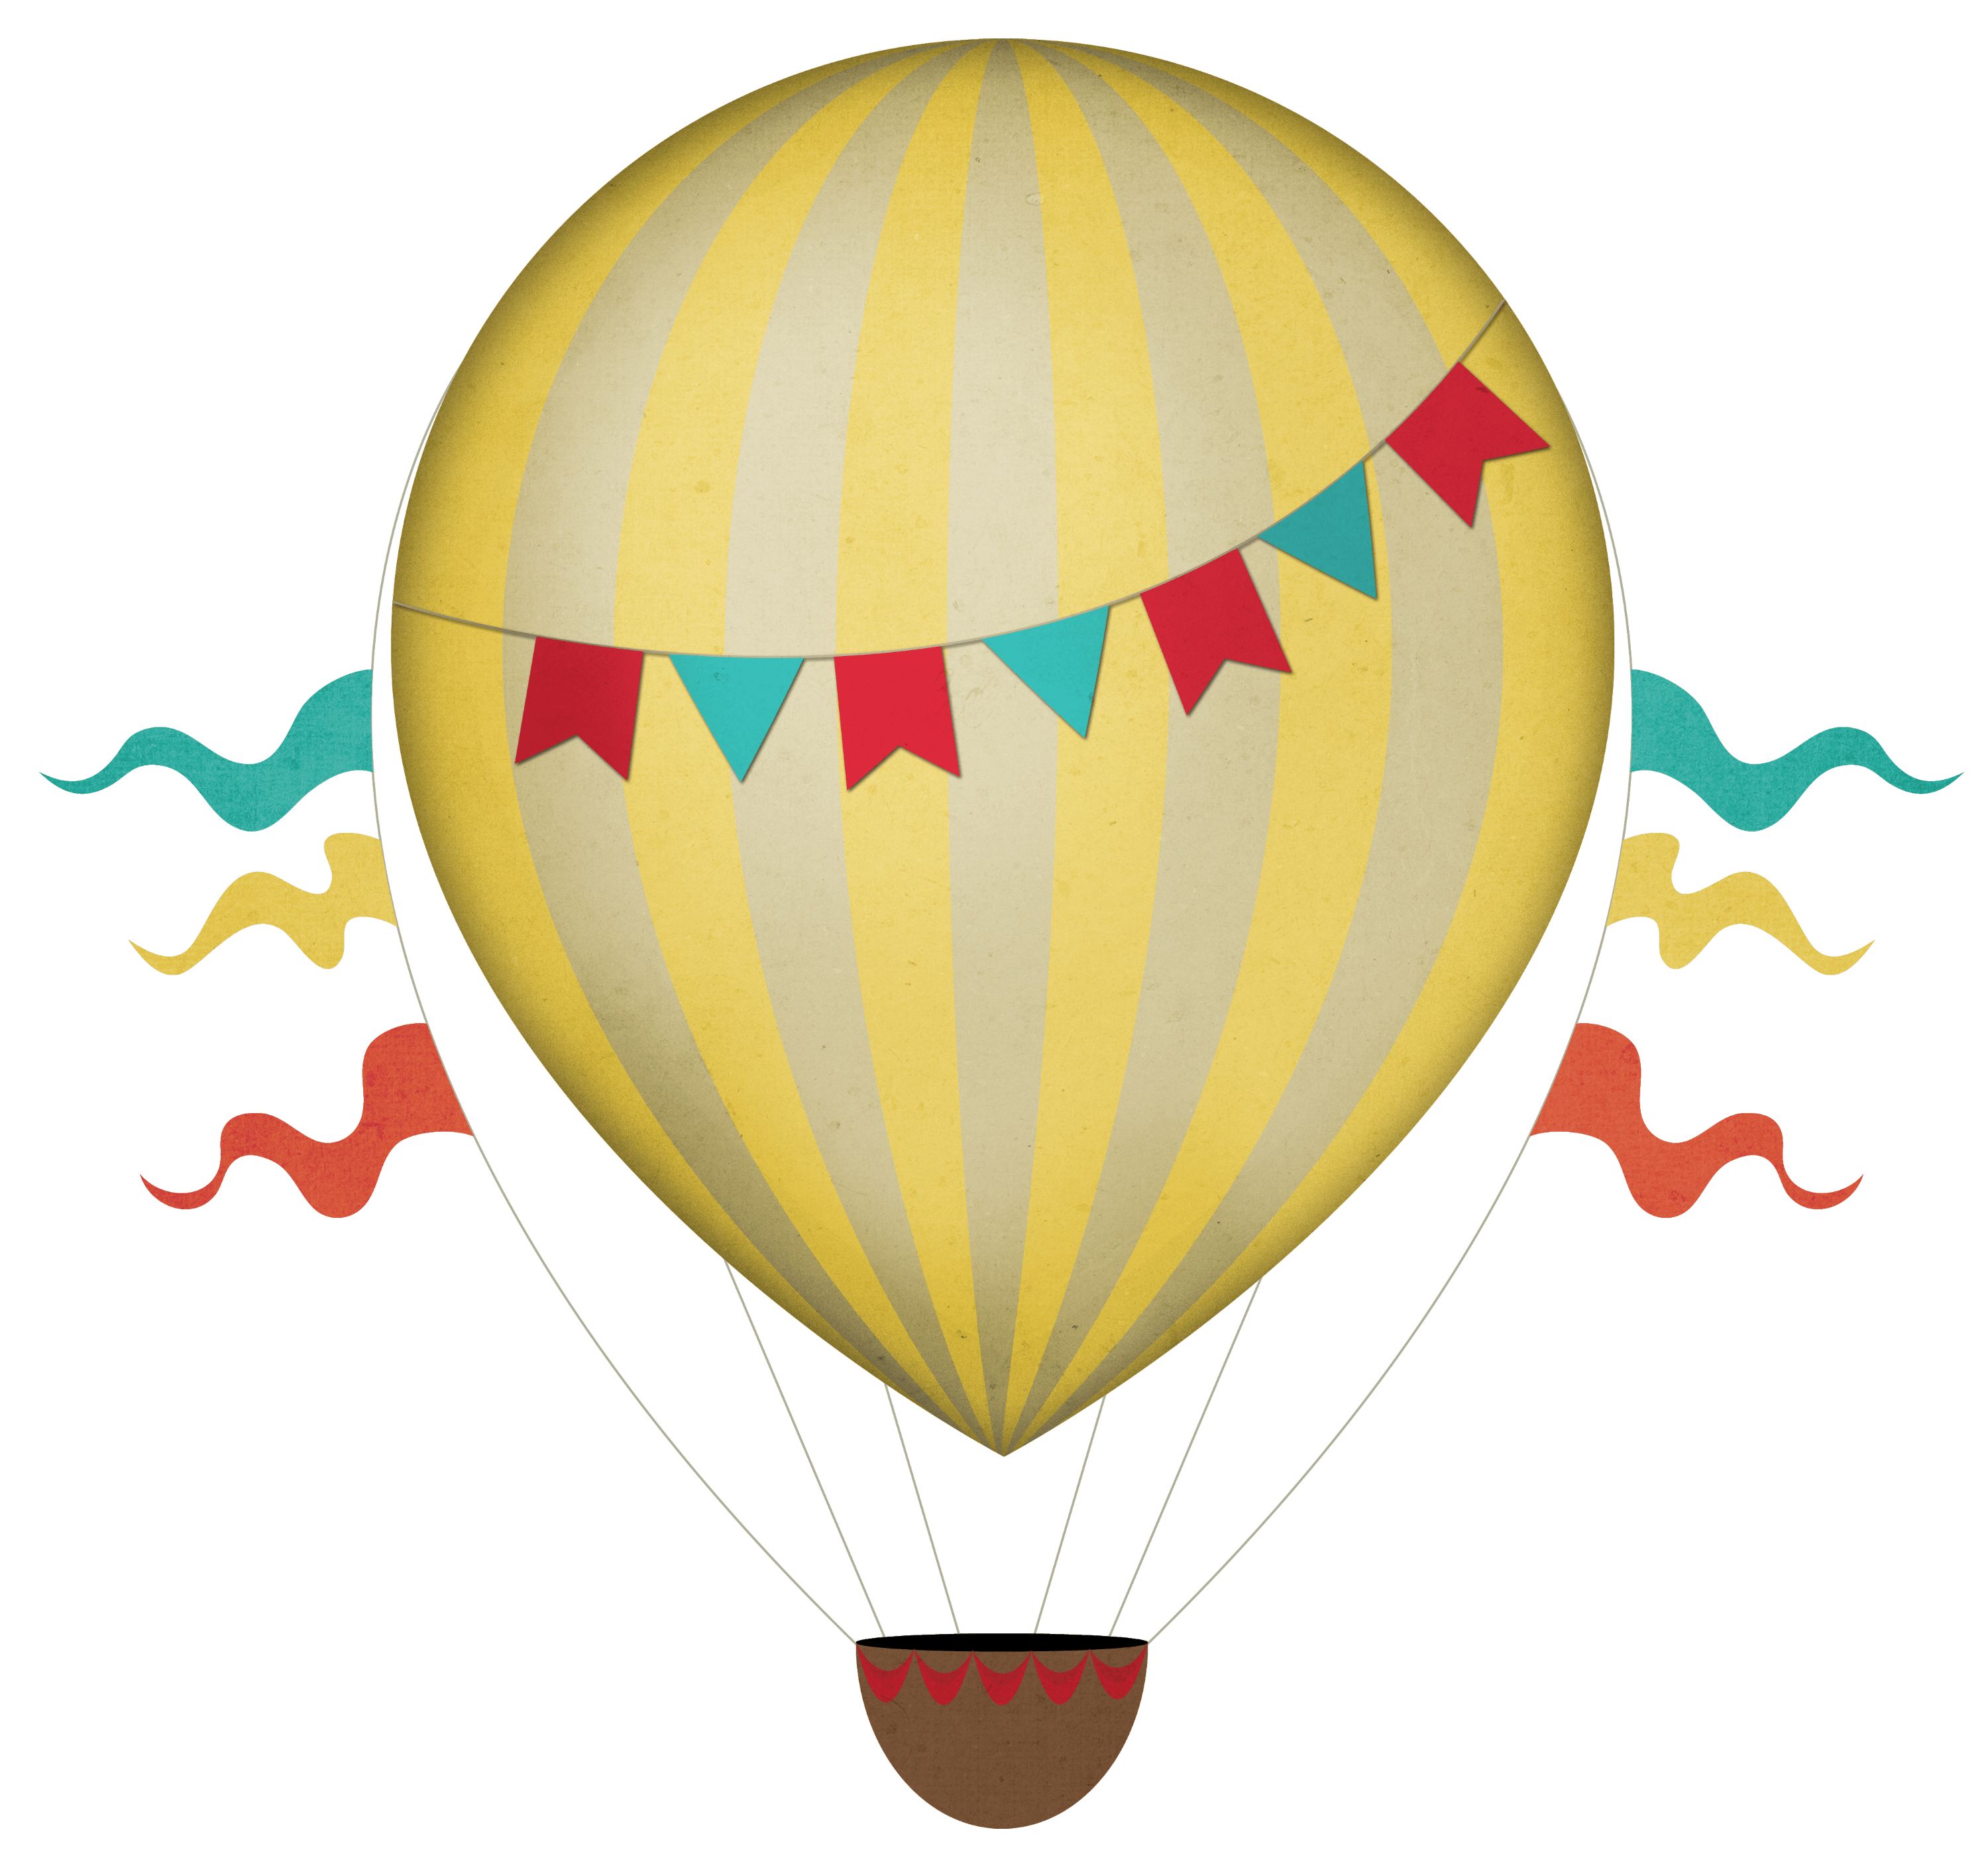 Hot Air Balloon Clipart Transparent Background.